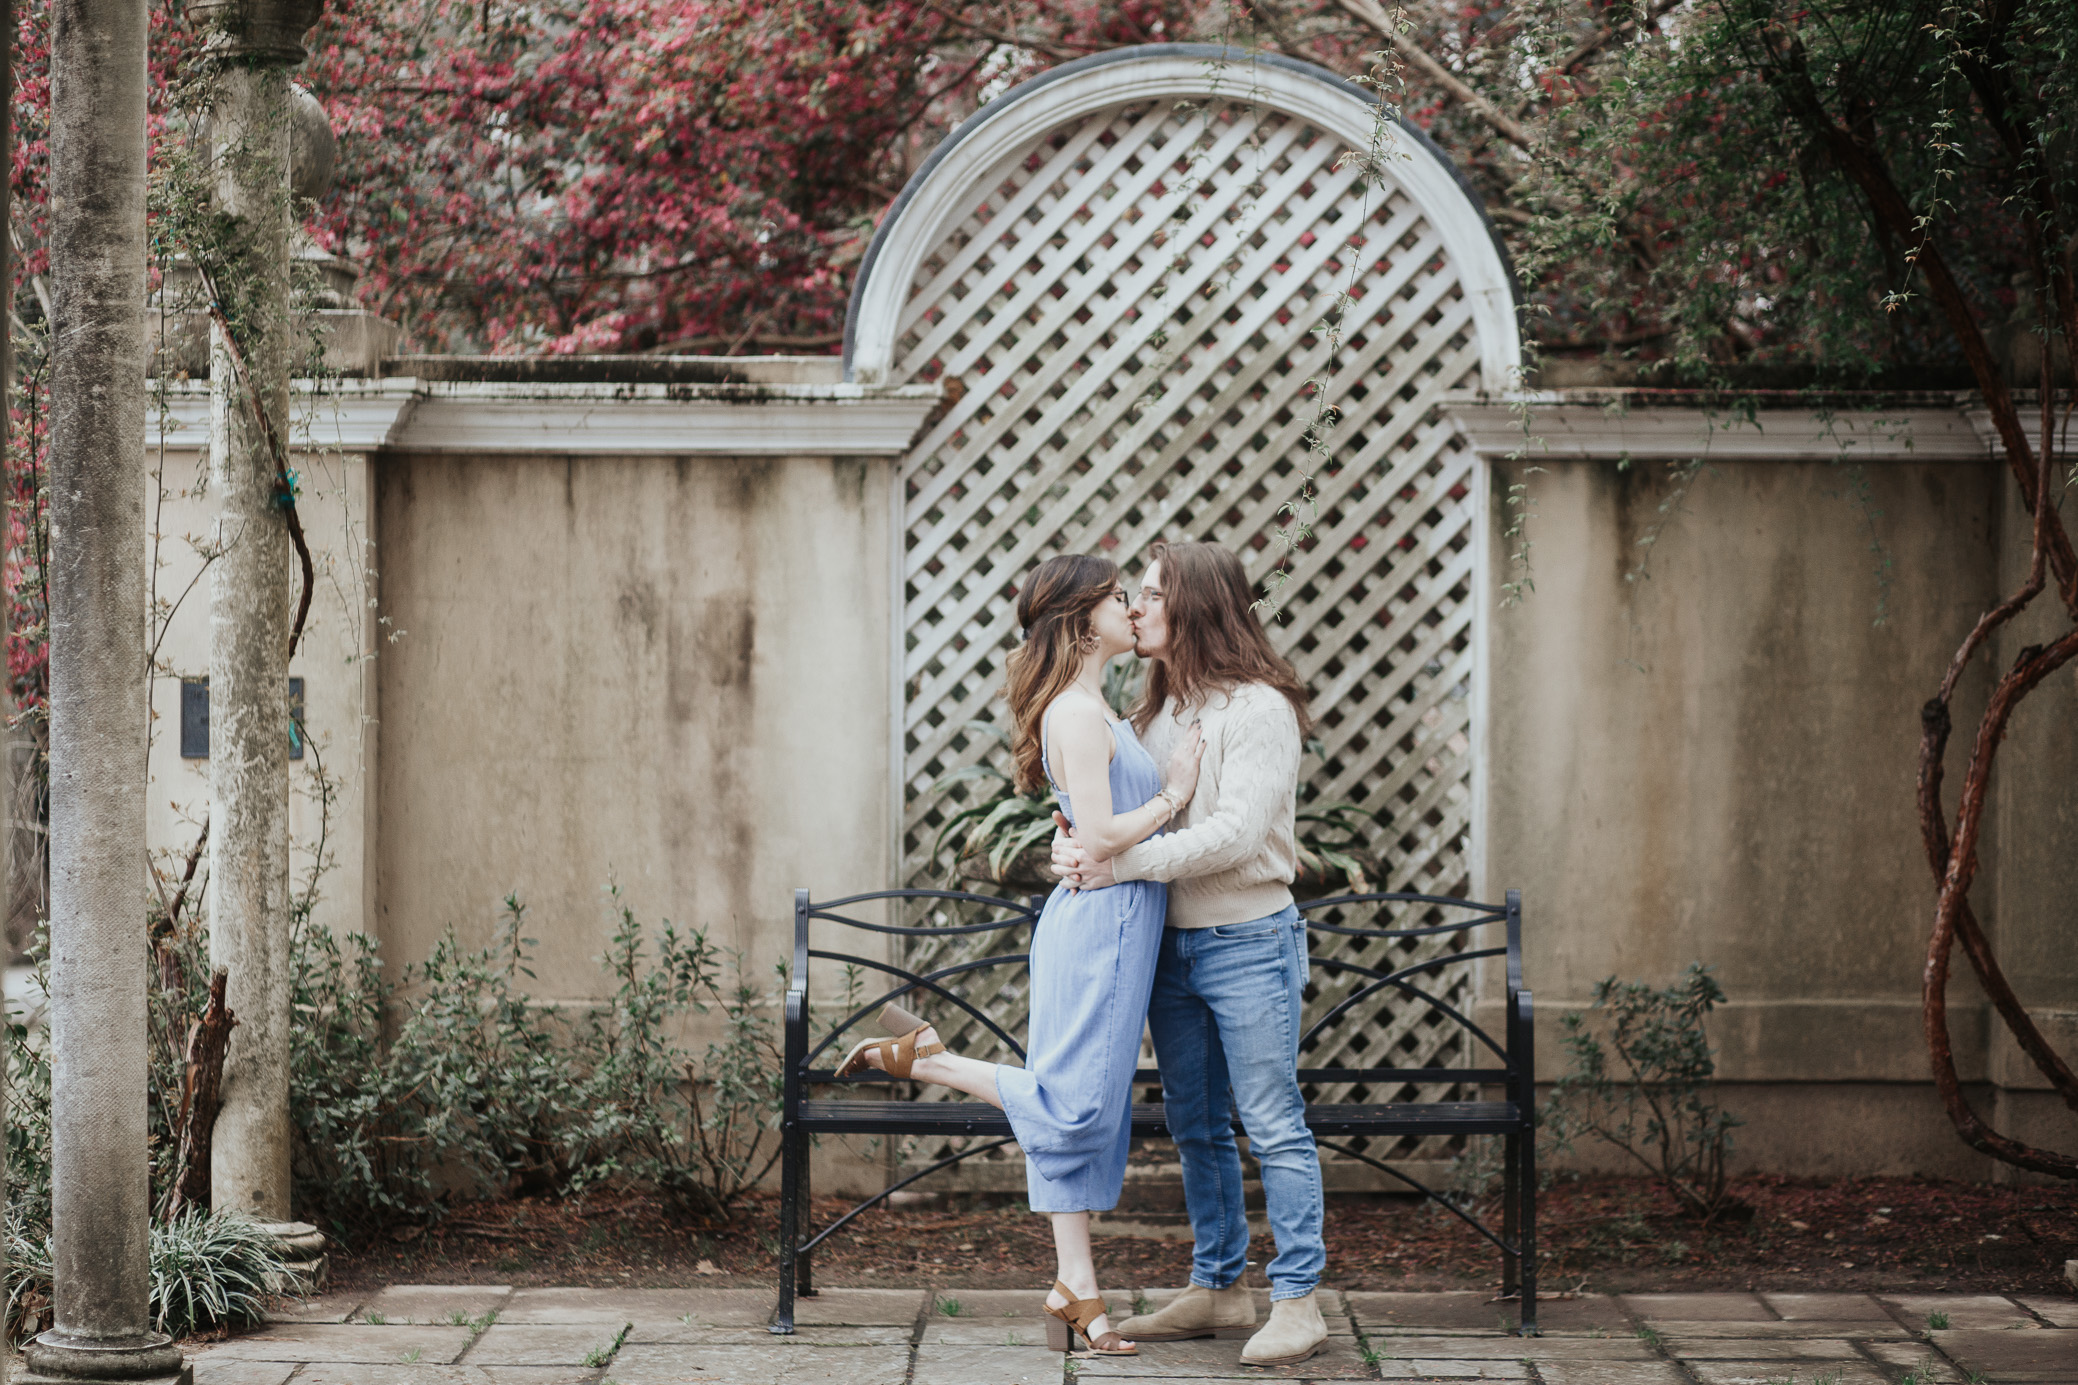 Birmingham Botanical Gardens Alabama engagement photography by David A. Smith of DSmithImages Wedding Photography, Portraits, and Events, a wedding photographer in Birmingham, Alabama